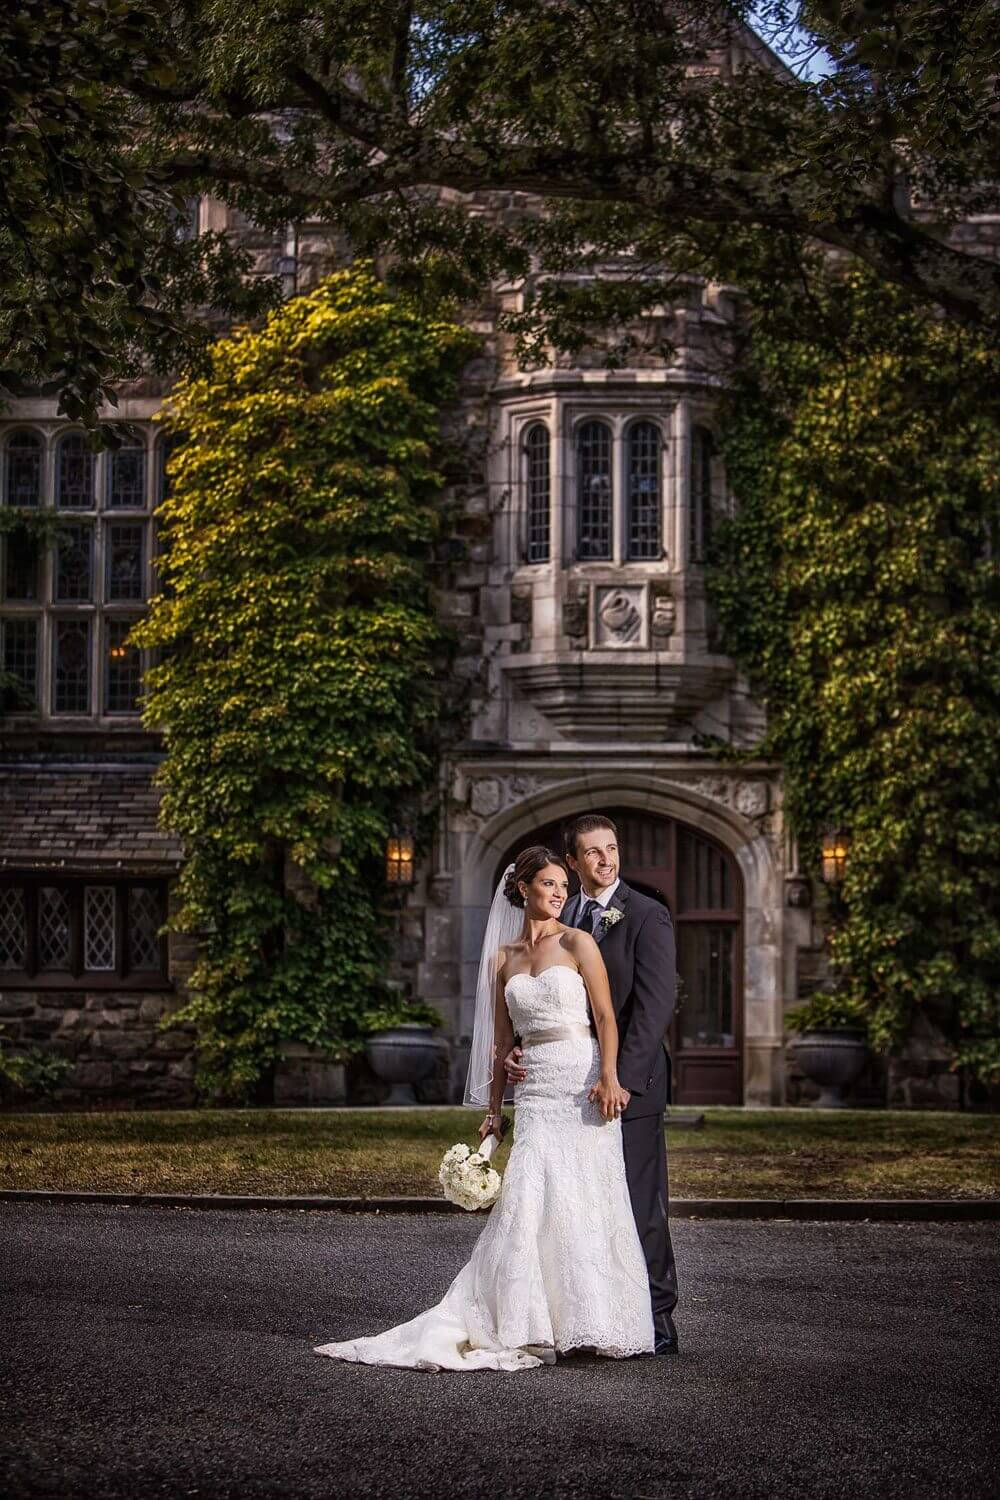 Bride and Groom in the front of the castle at Skyland Manor wedding Photo New Jersey Wedding Photographer